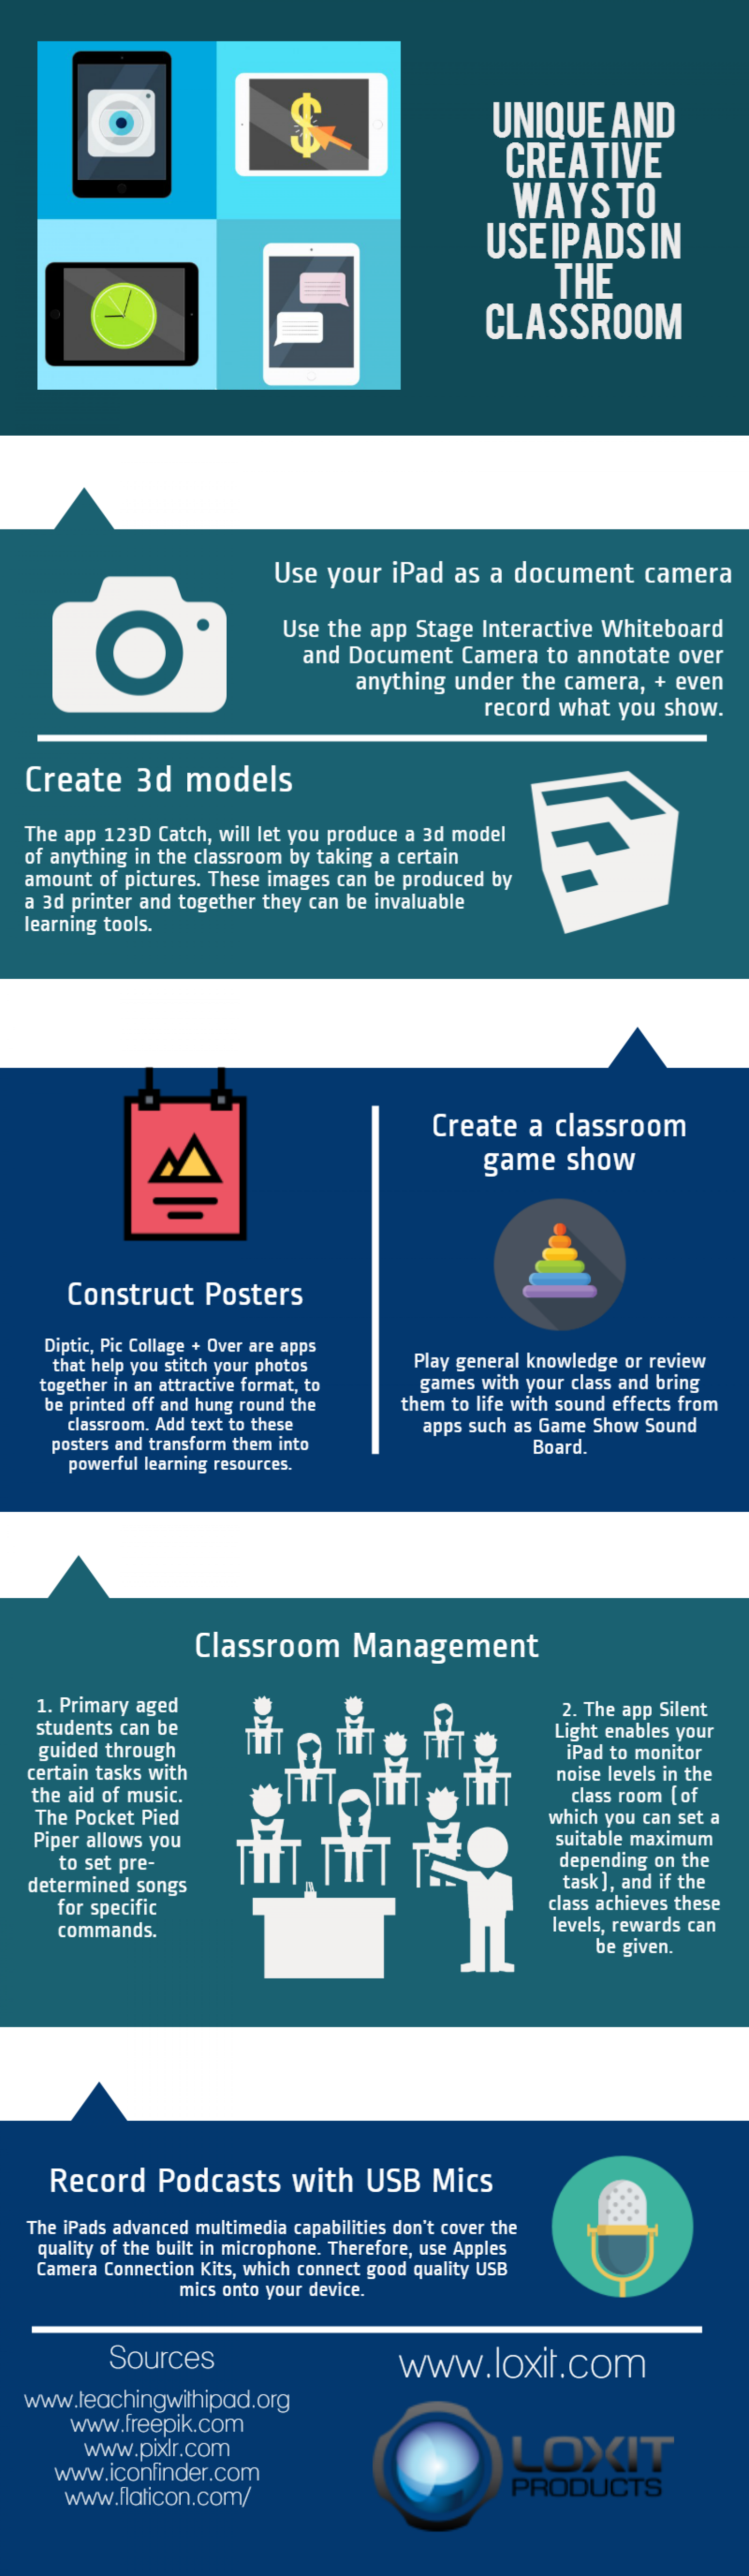 Unique and Creative Ways to Use iPads in the Classroom Infographic